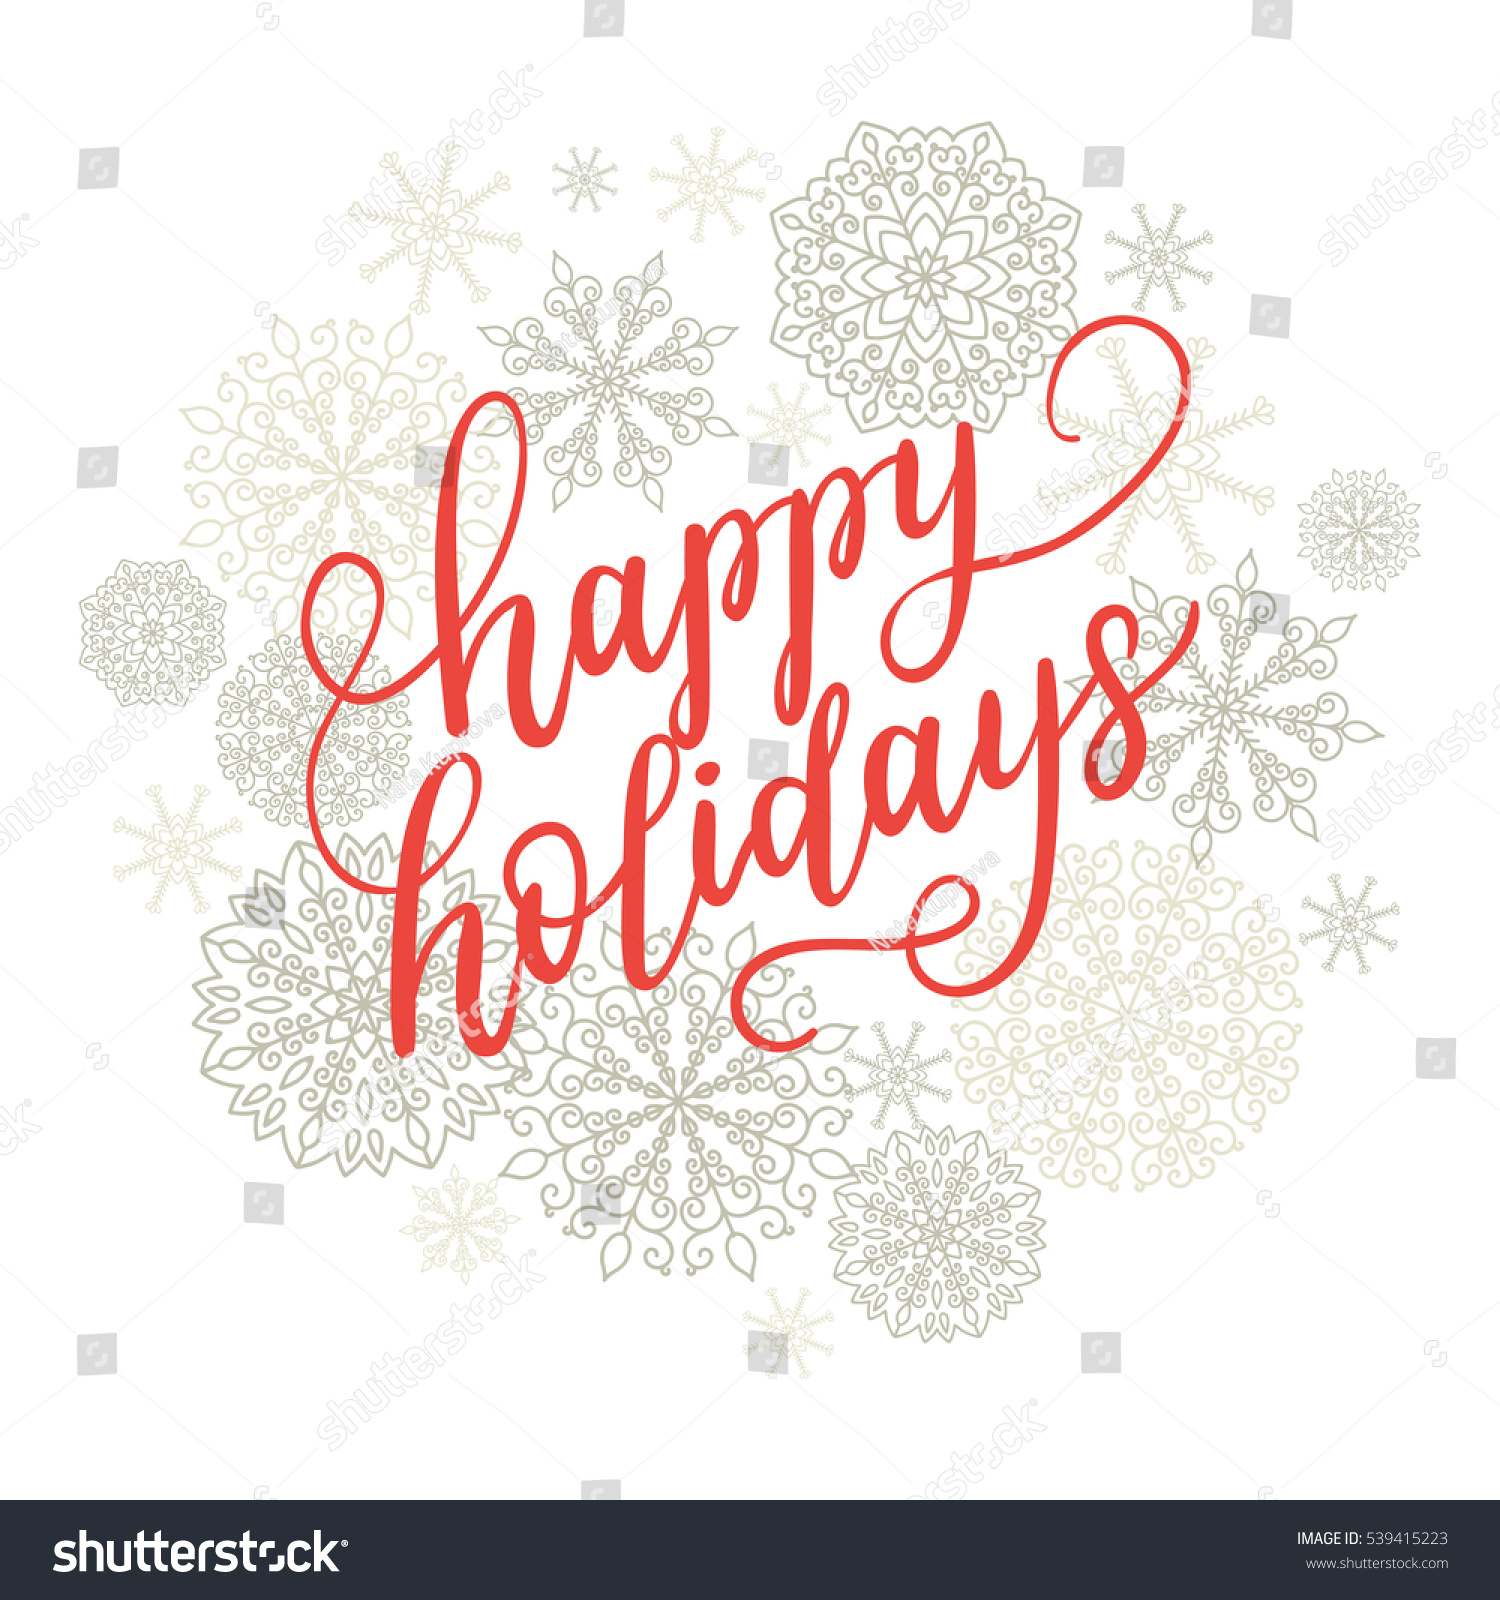 Happy Holidays Greeting Card New Year Stock Vector (Royalty Free ...